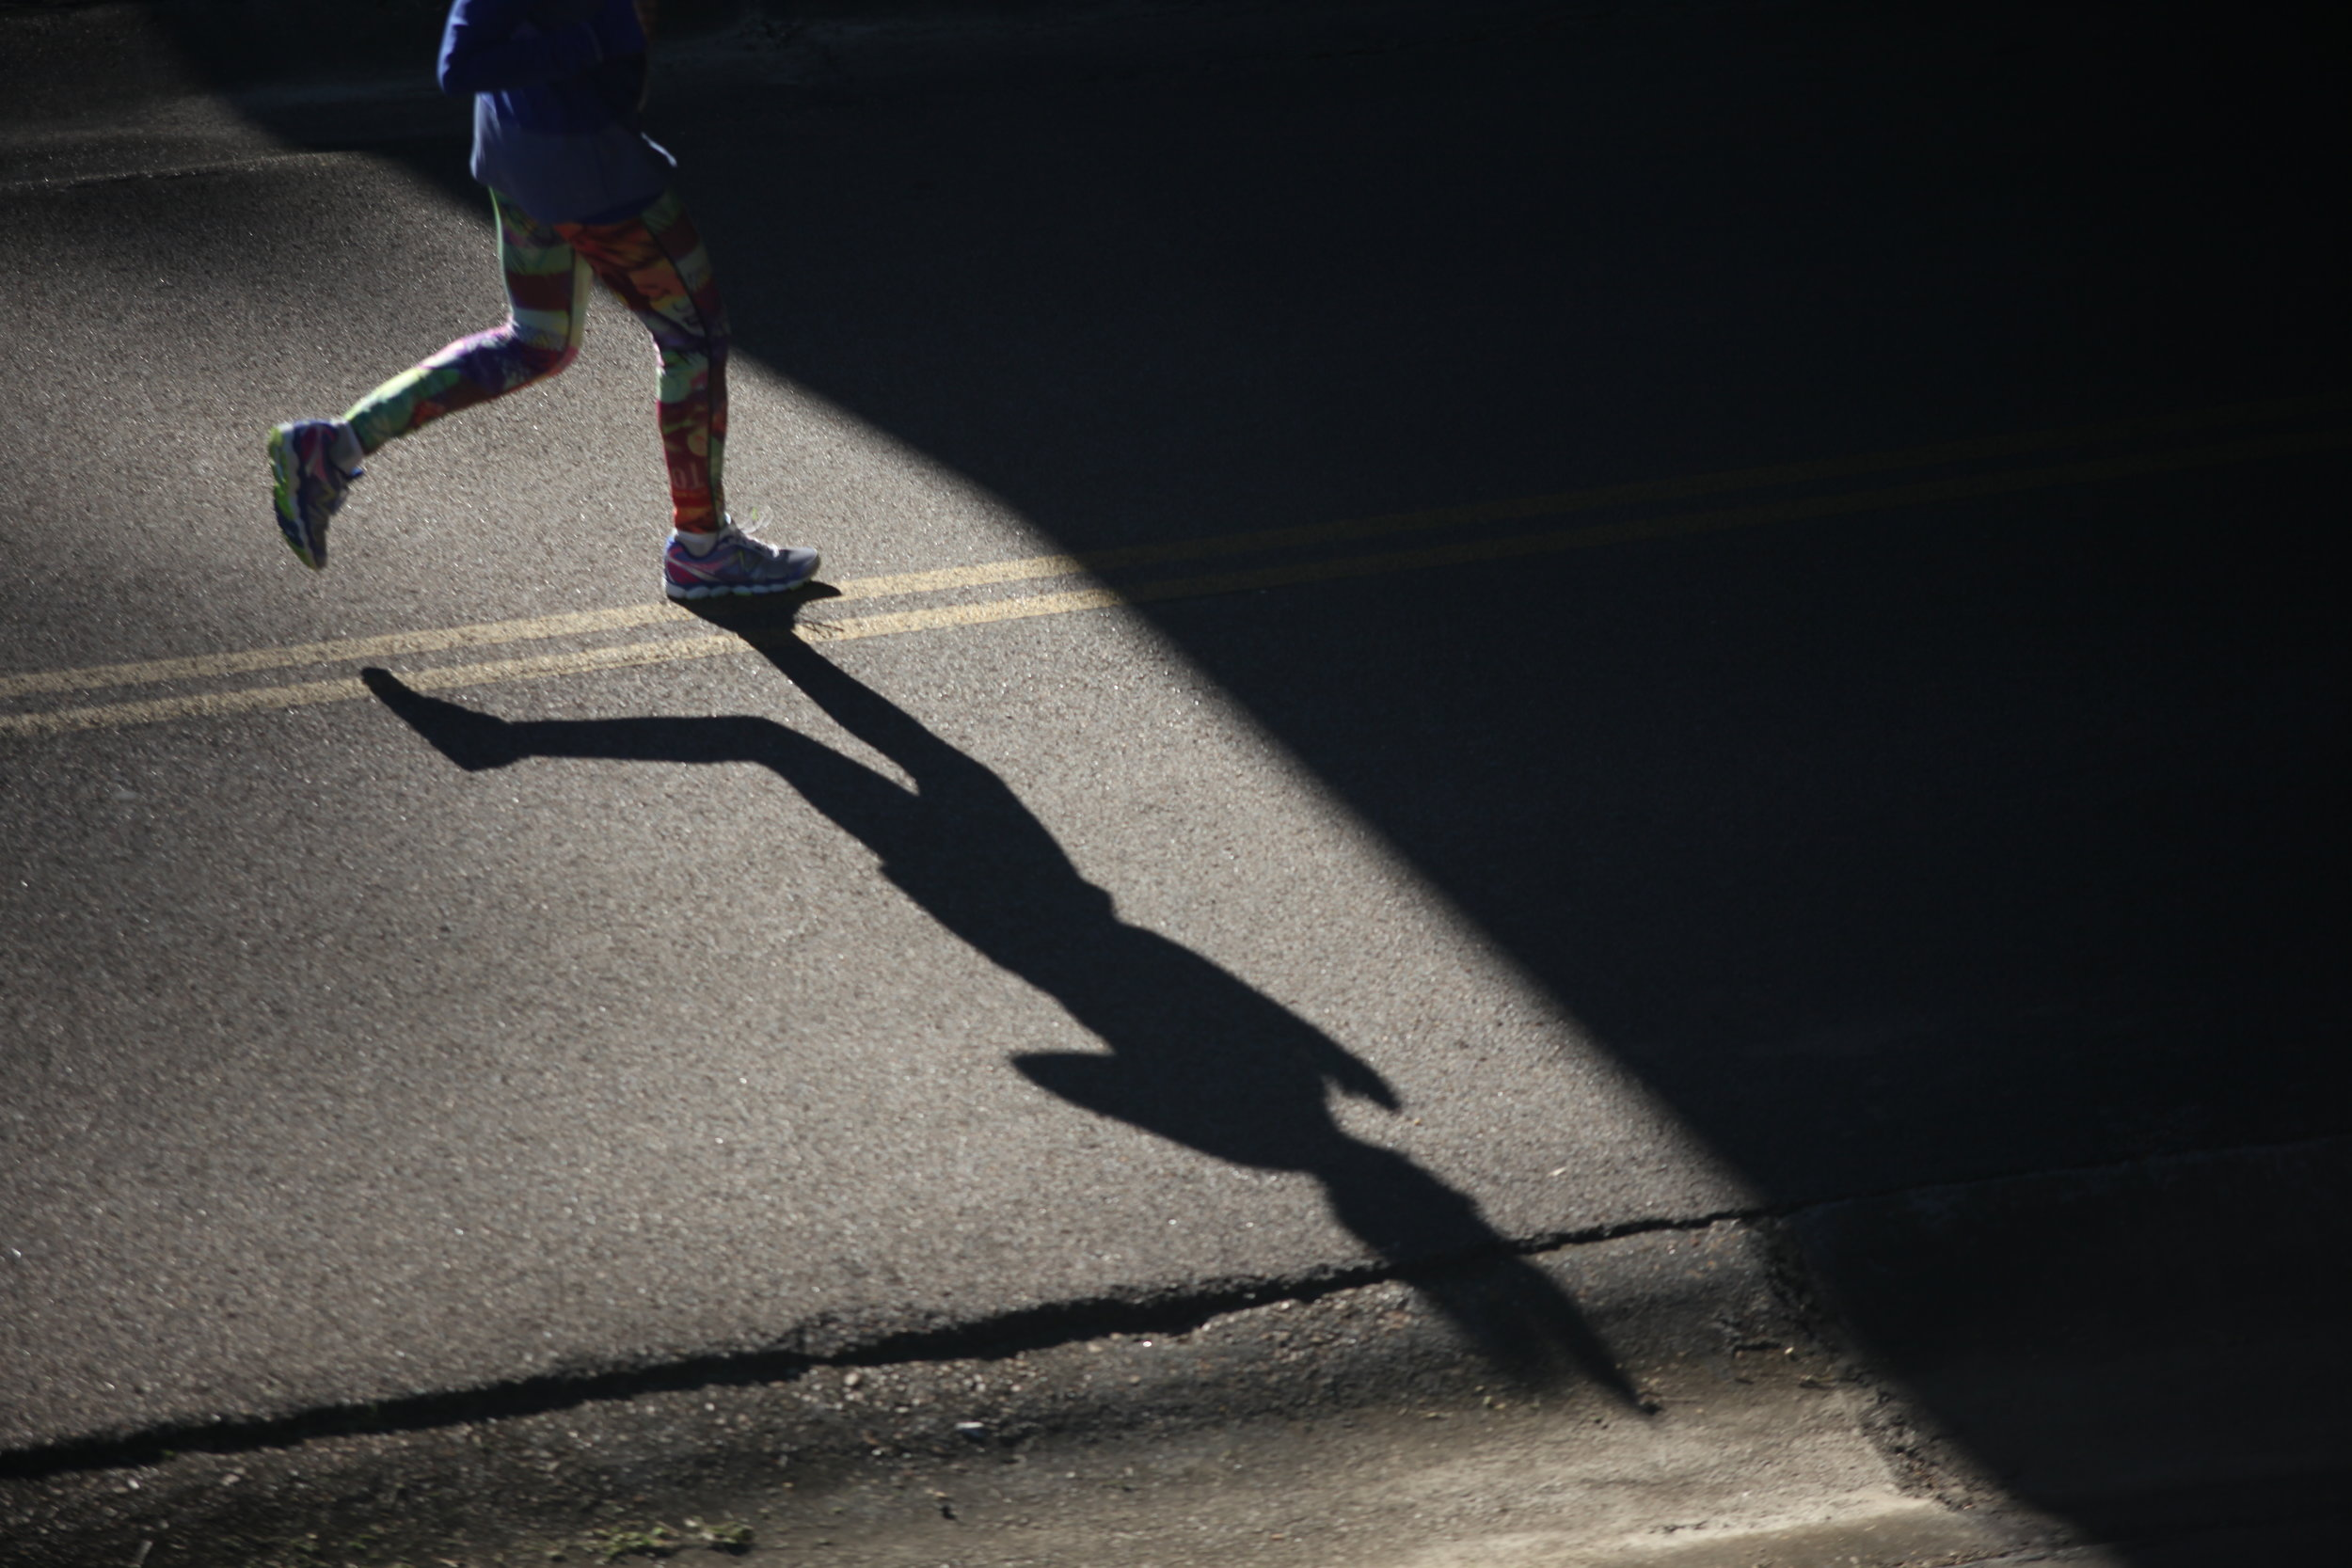 A competitor runs in the 10k race during the 39th Annual Run Thru History at the Vicksburg National Military Park  Saturday. (Courtland Wells/The Vicksburg Post)